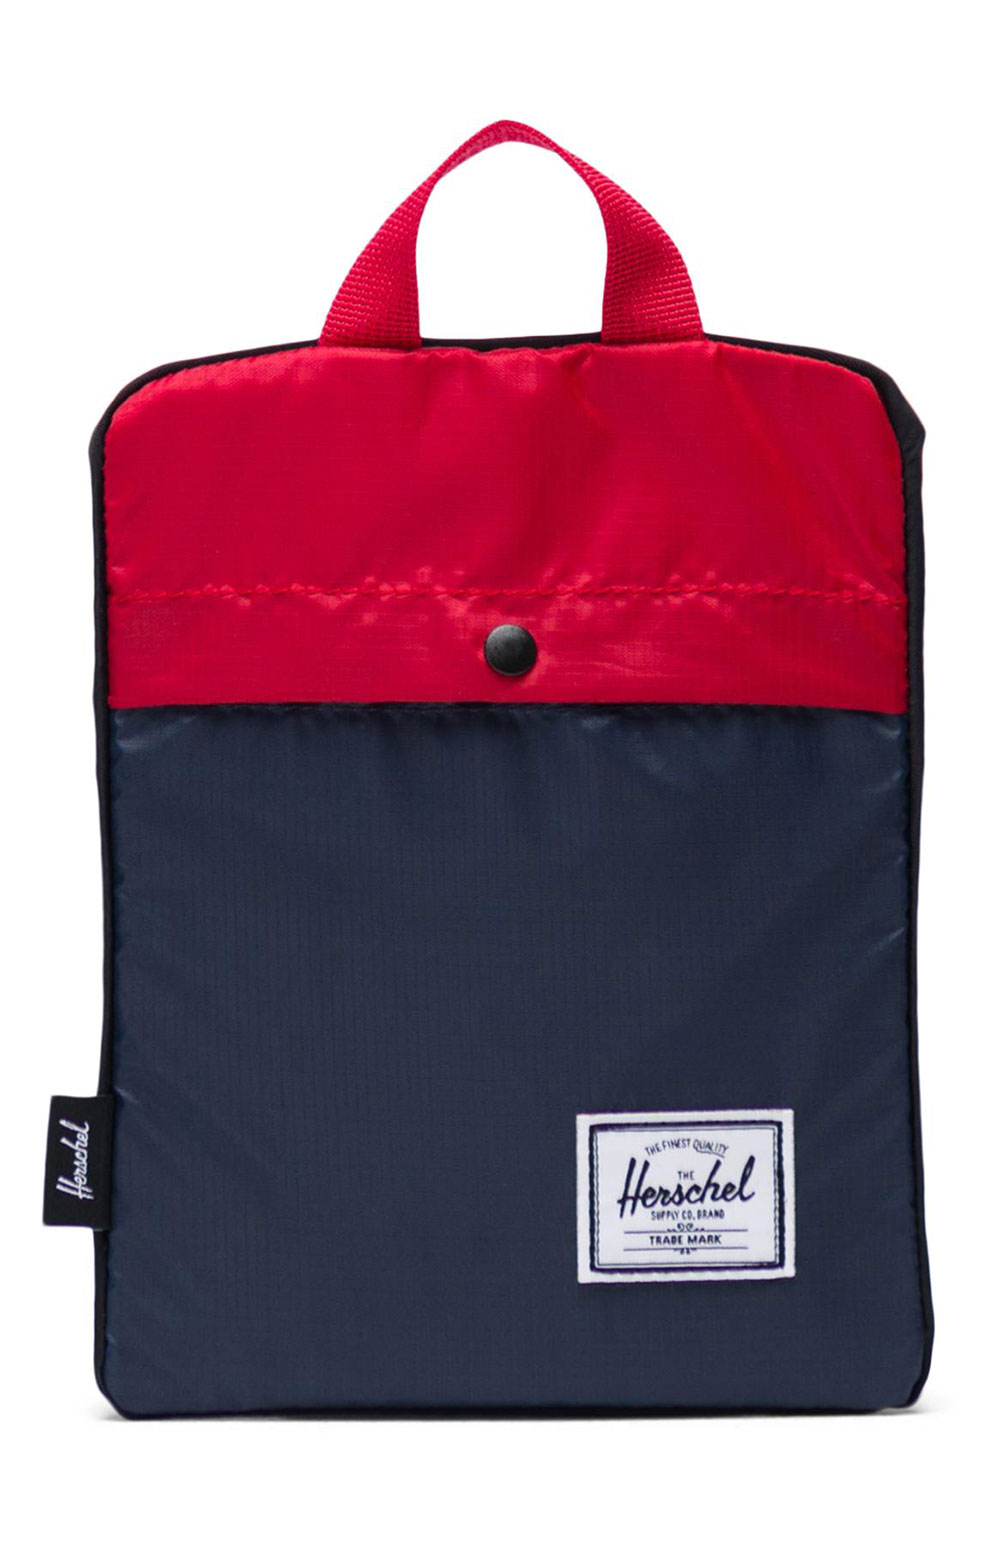 Packable Duffle Bag - Navy/Red 3